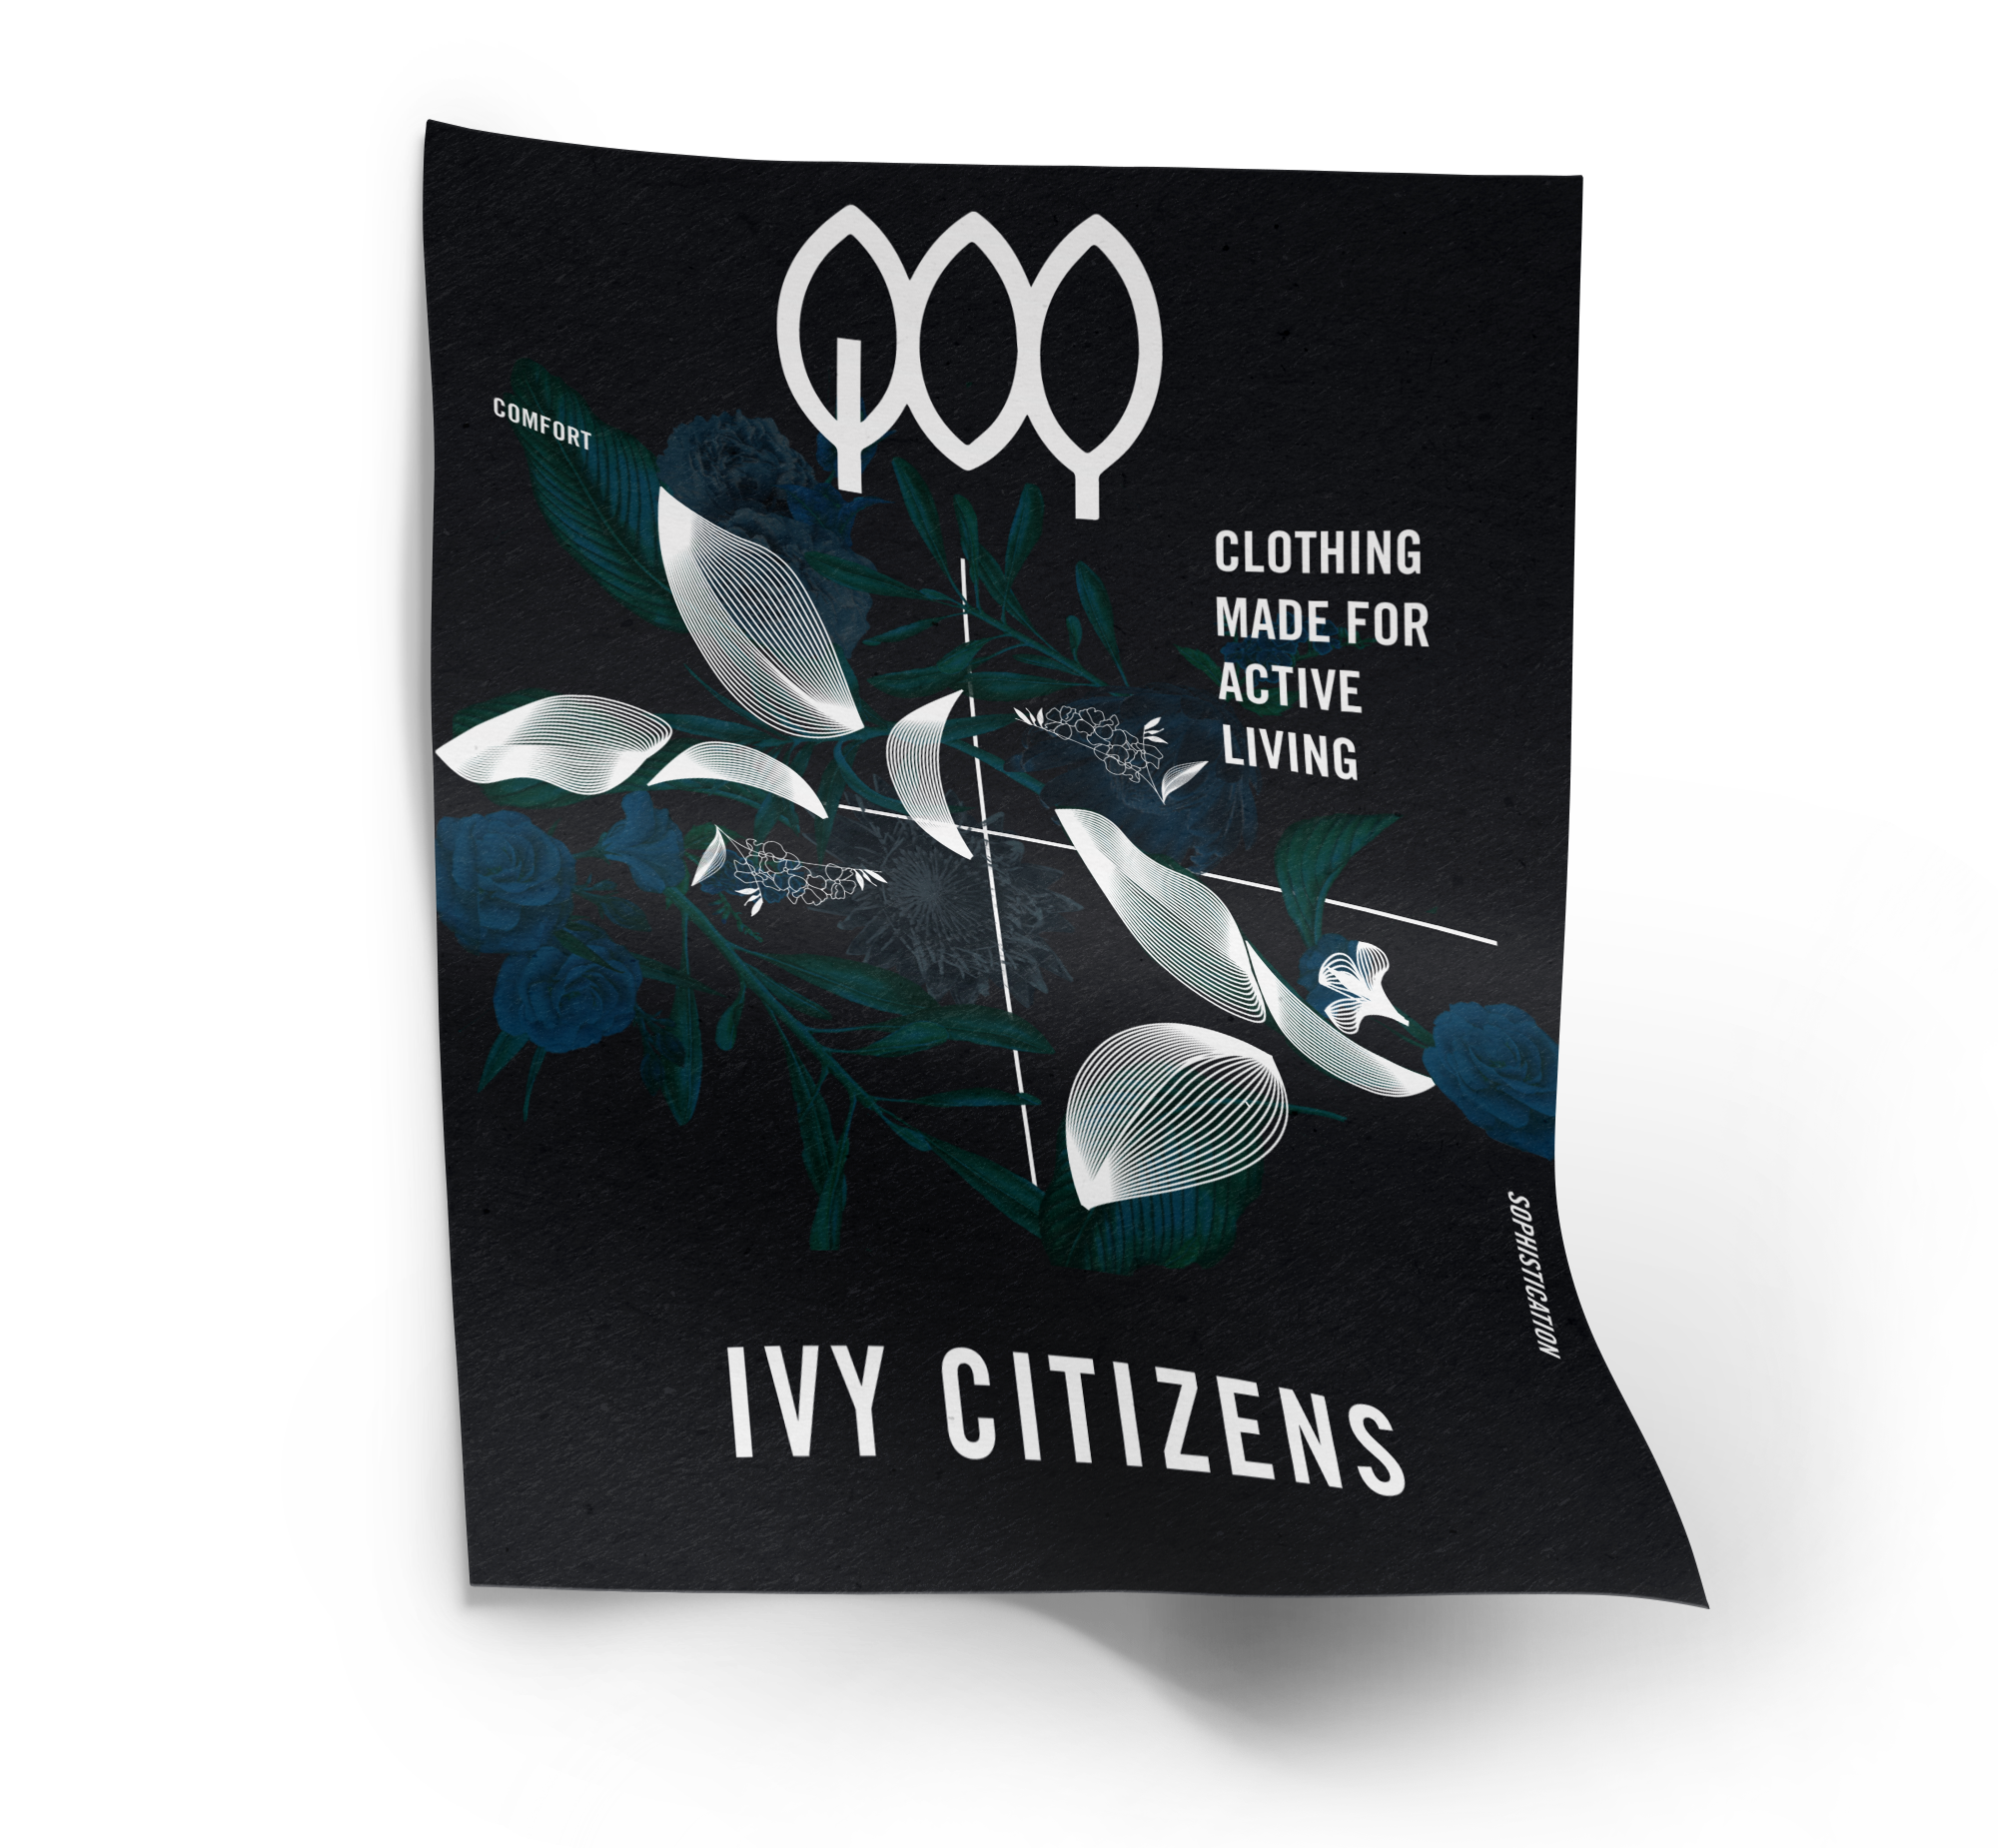 poster designed for ivy citizens by control advertising